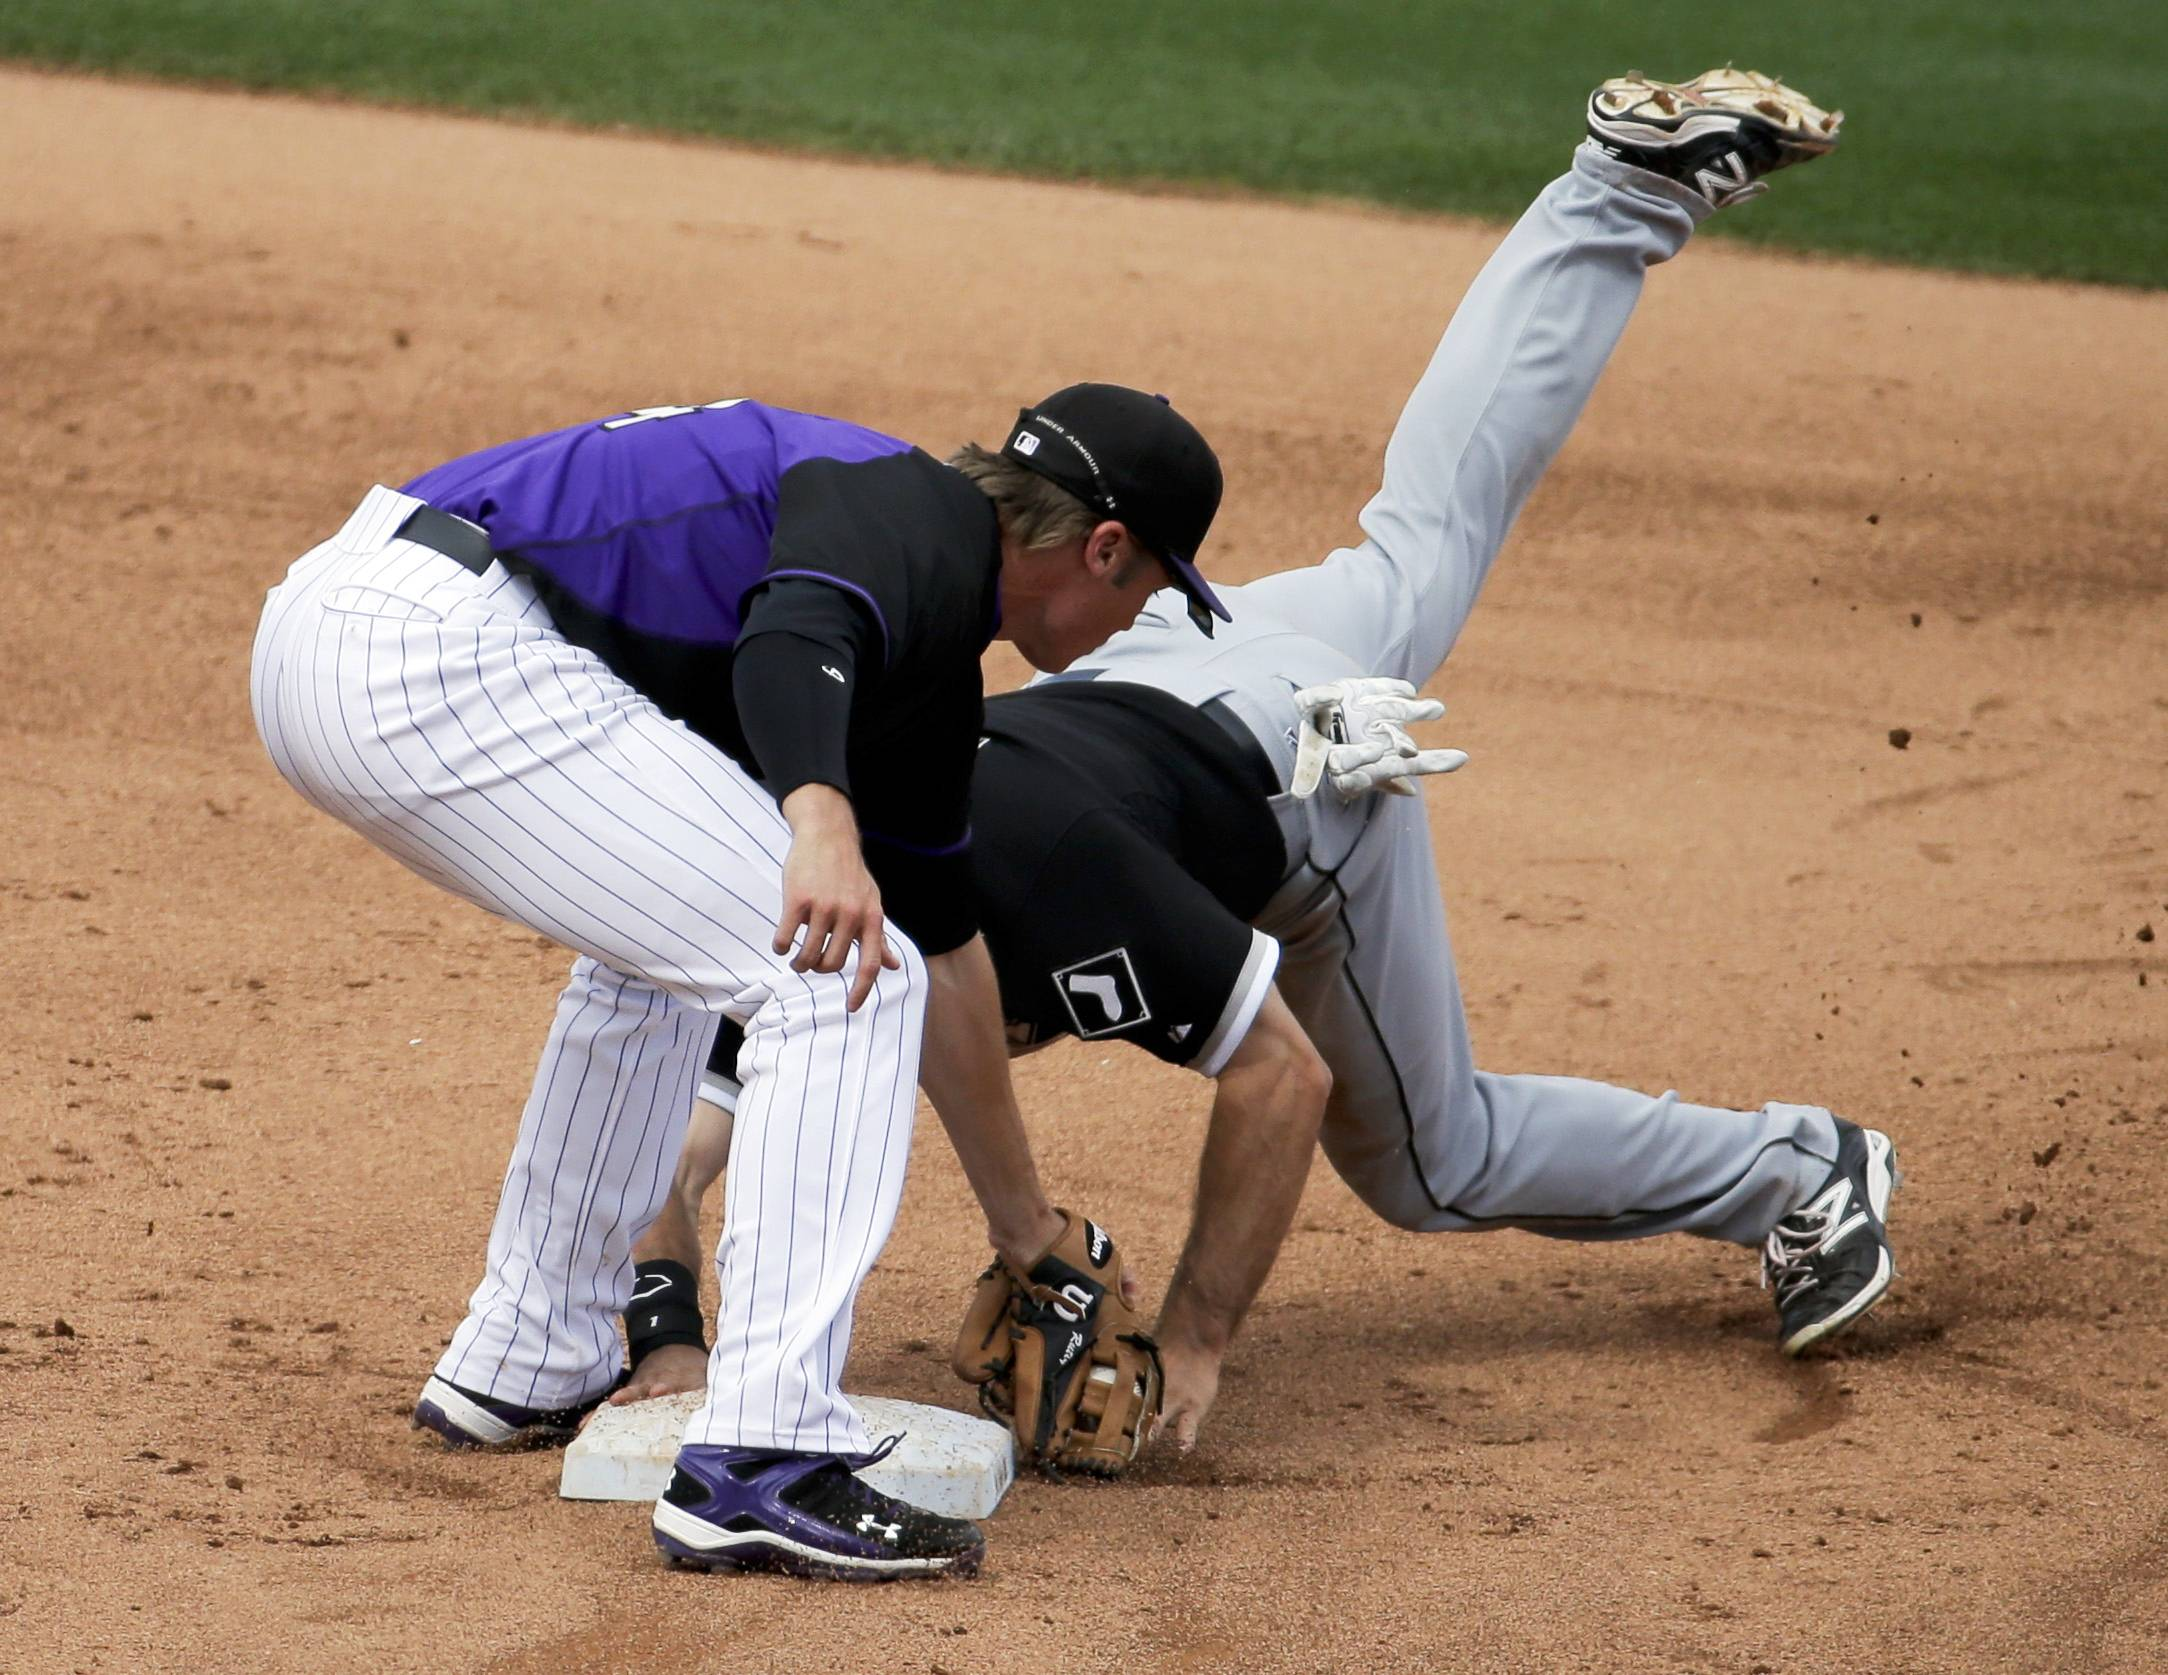 Chicago White Sox's Adam Eaton, right, is safe at second under the tag by Colorado Rockies shortstop Josh Rutledge during the sixth inning of a spring exhibition baseball game in Scottsdale, Ariz., Sunday, March 23, 2014.